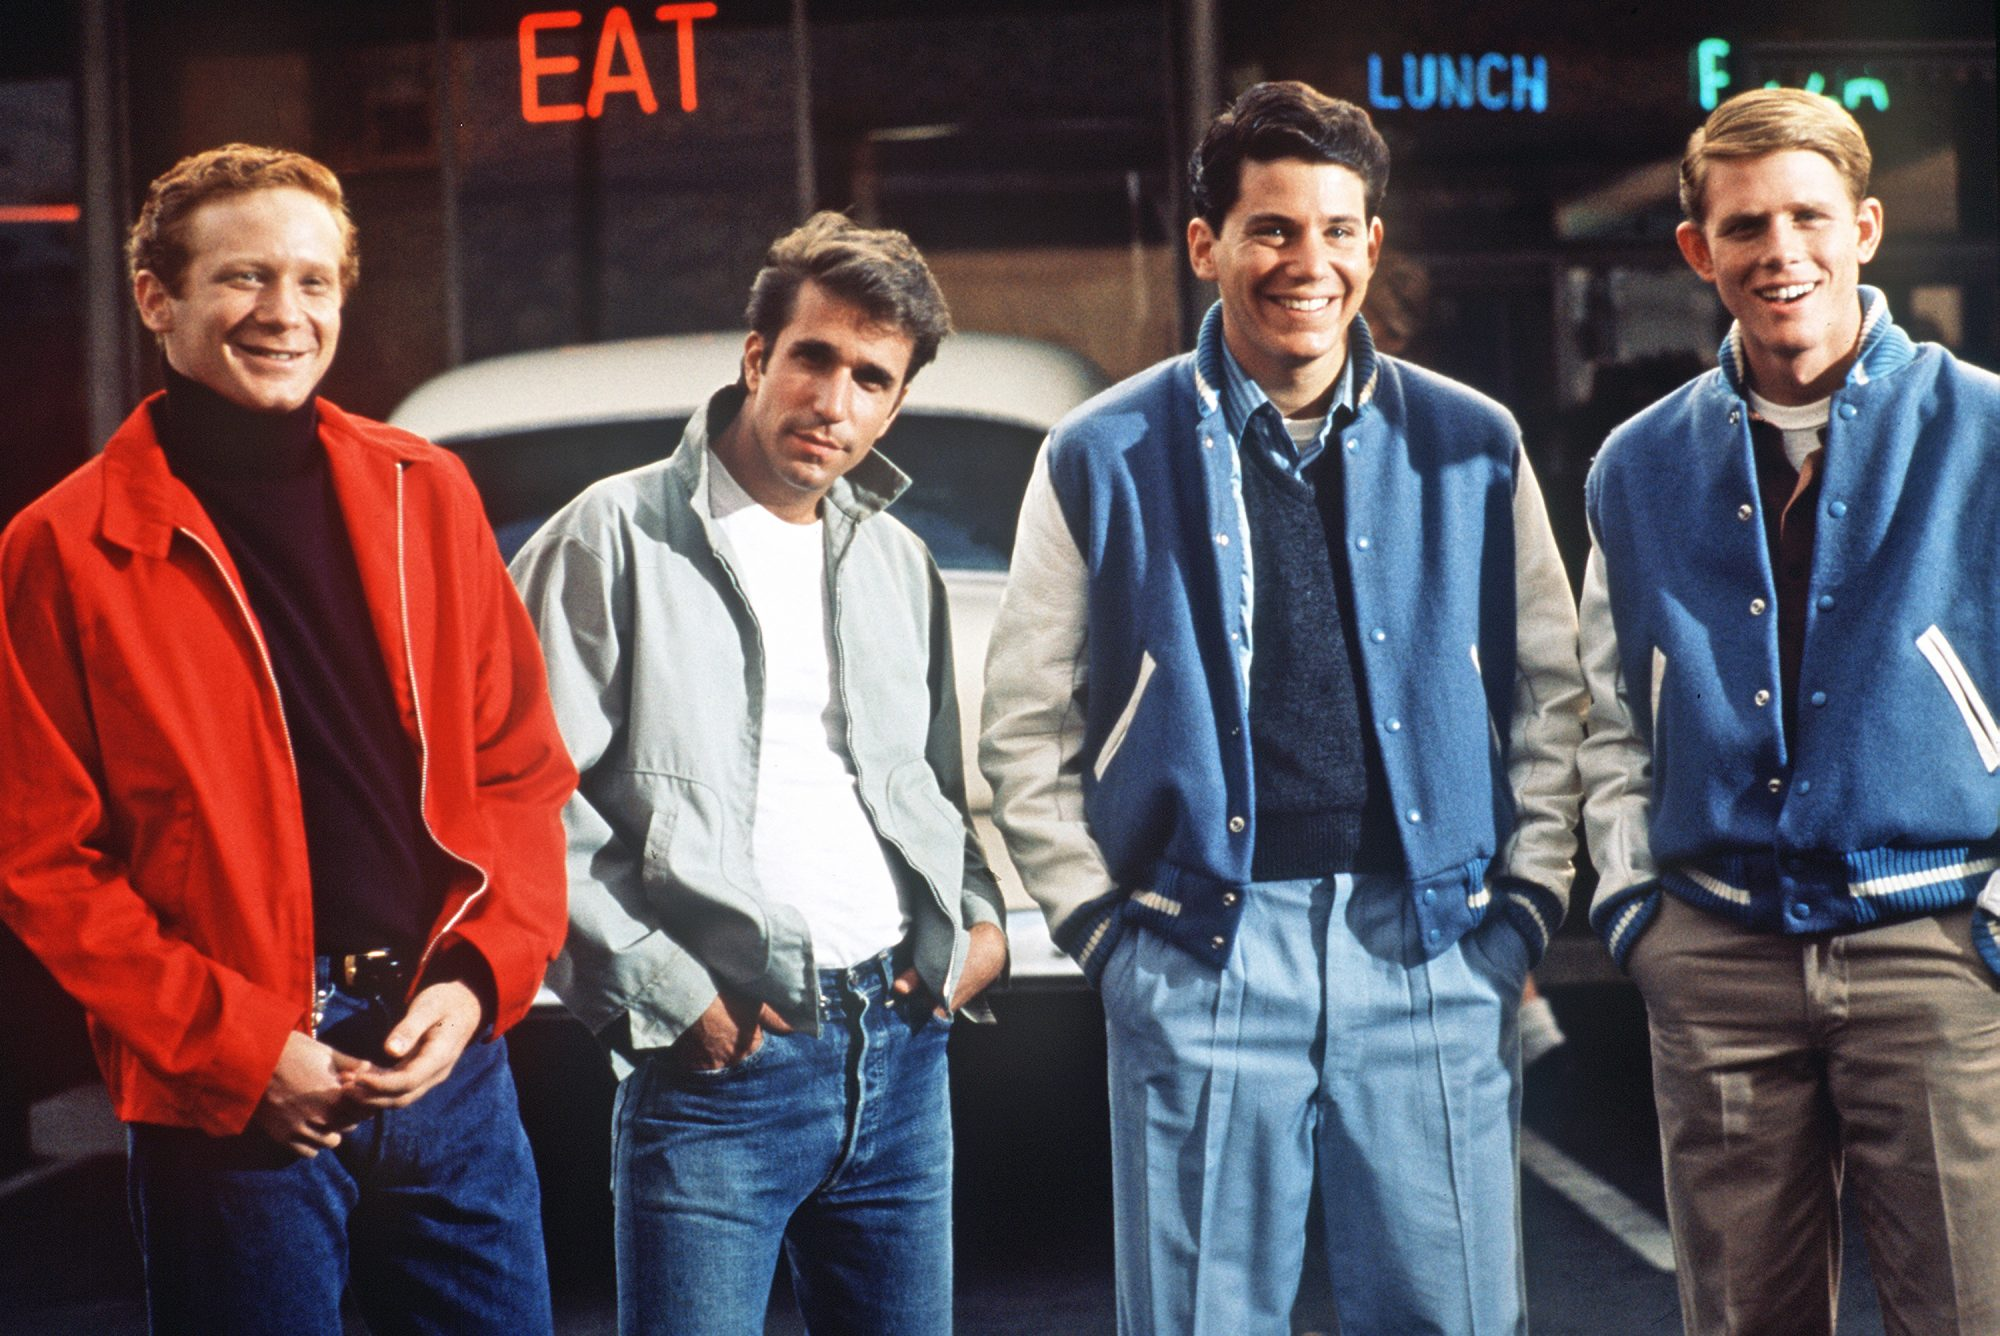 Donny Most, Henry Winkler, Anson Williams, and Ron Howard